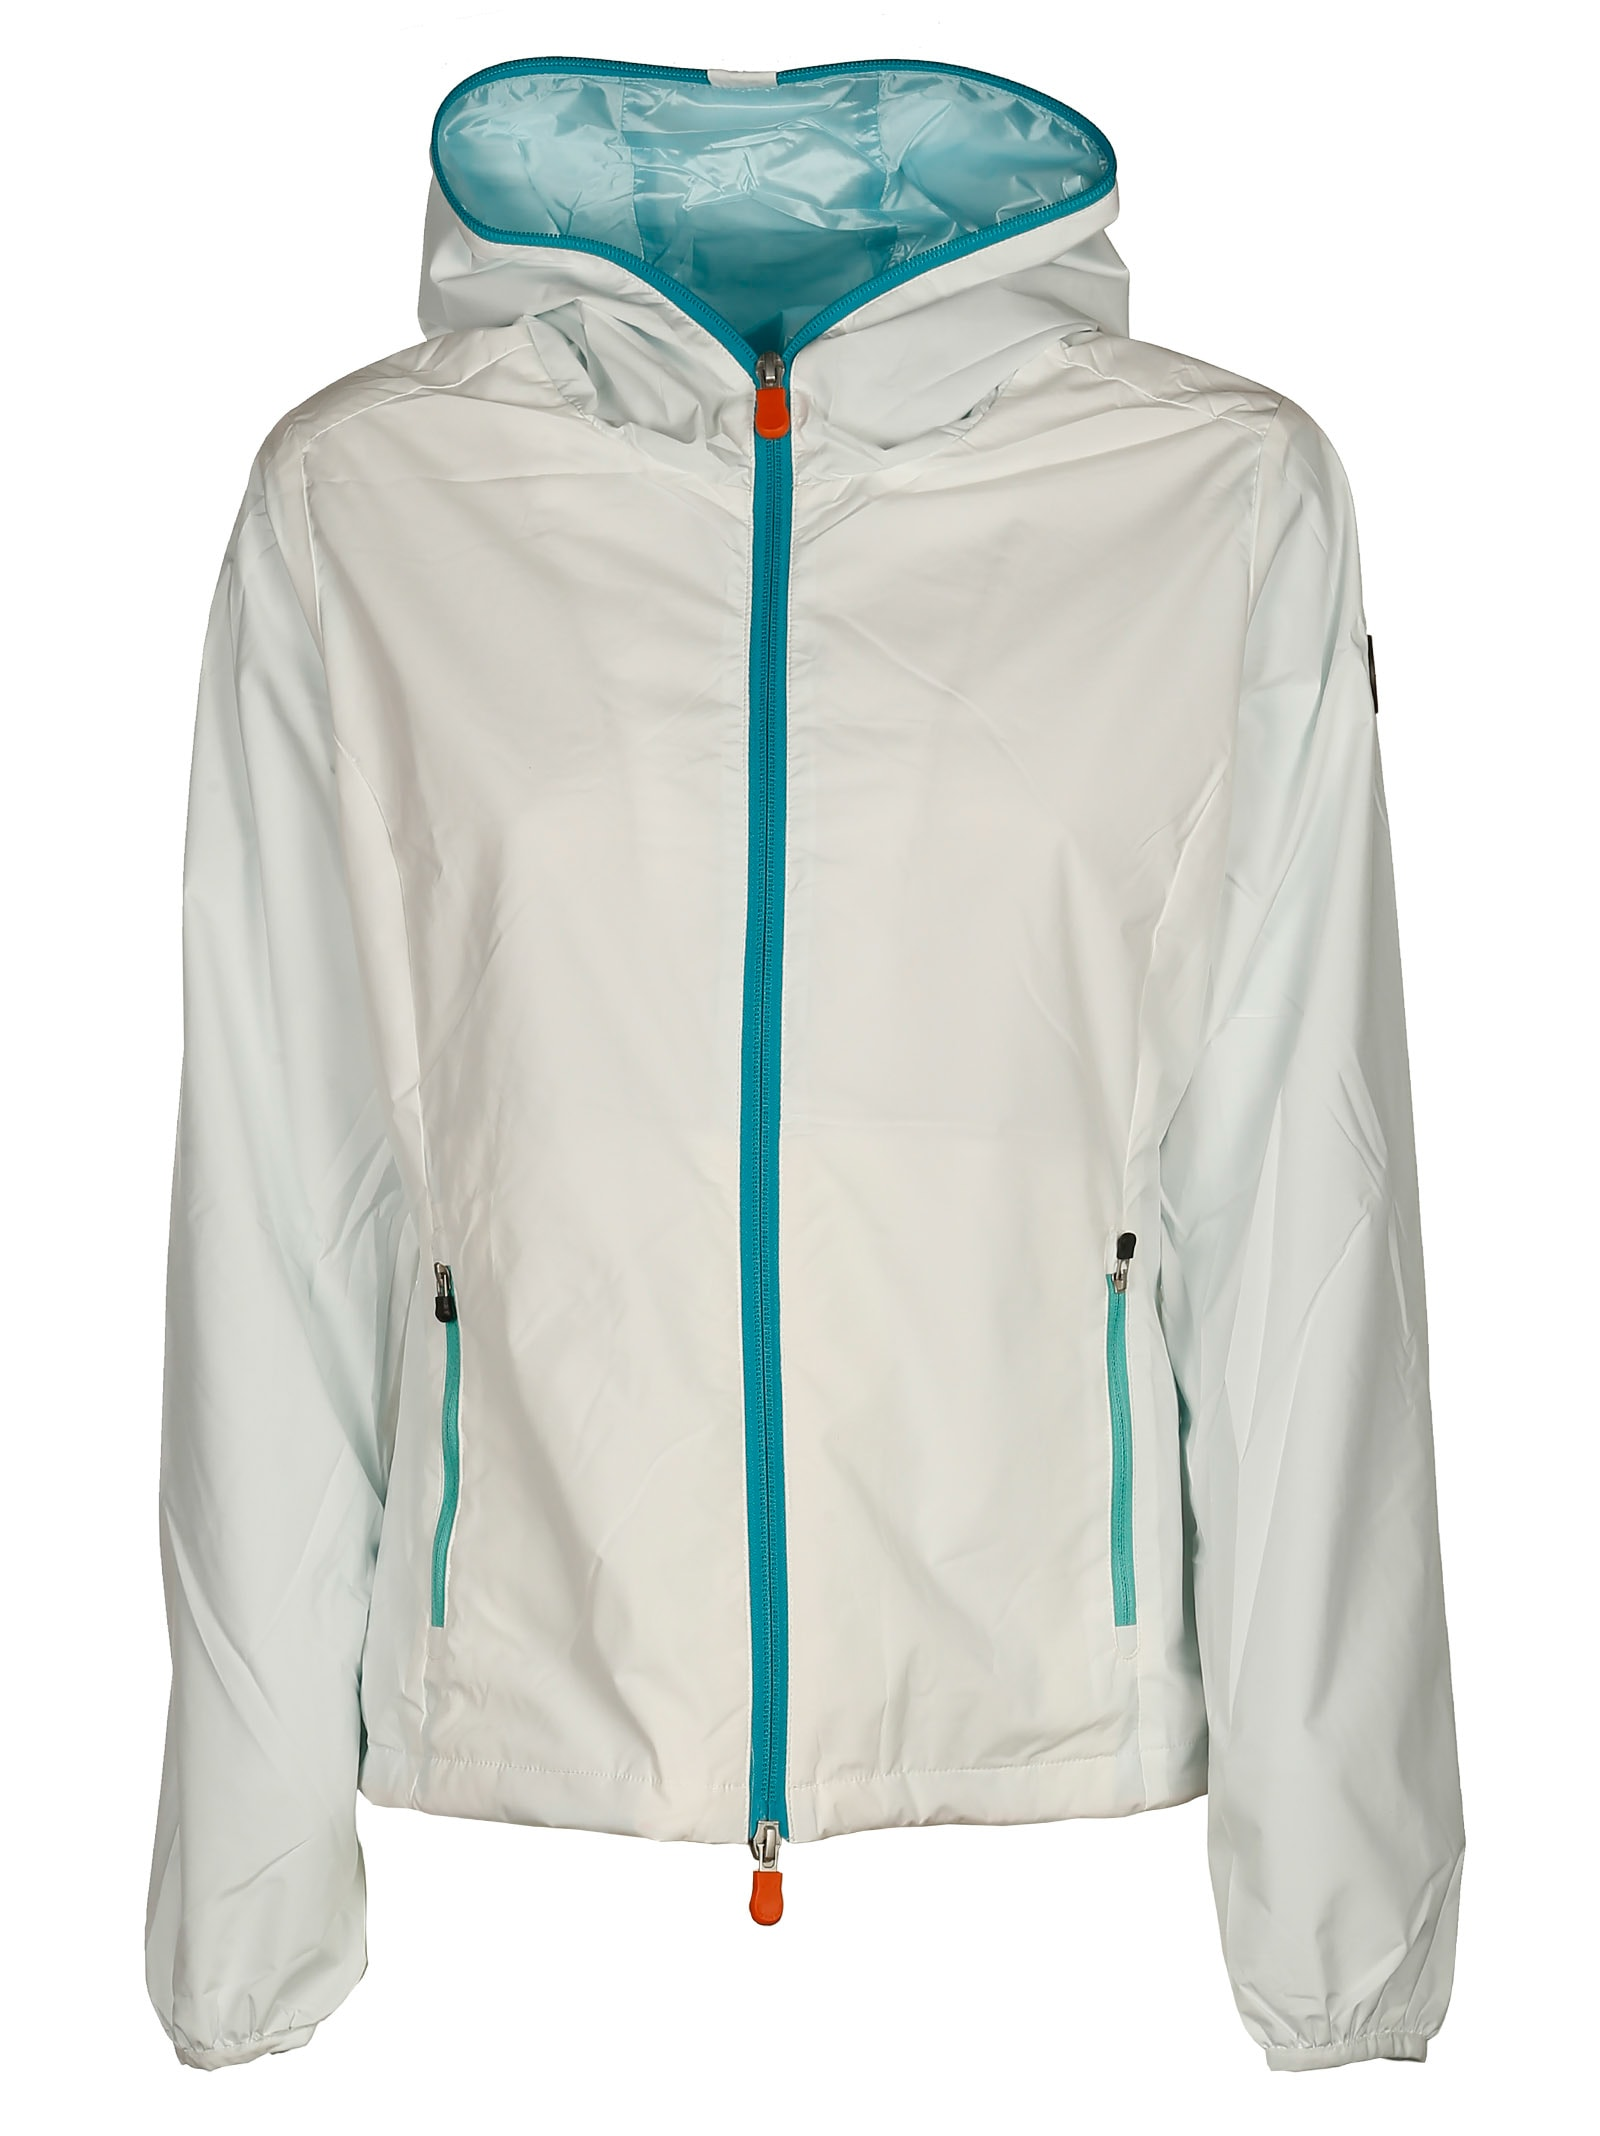 Save the Duck Zipped-up Jacket